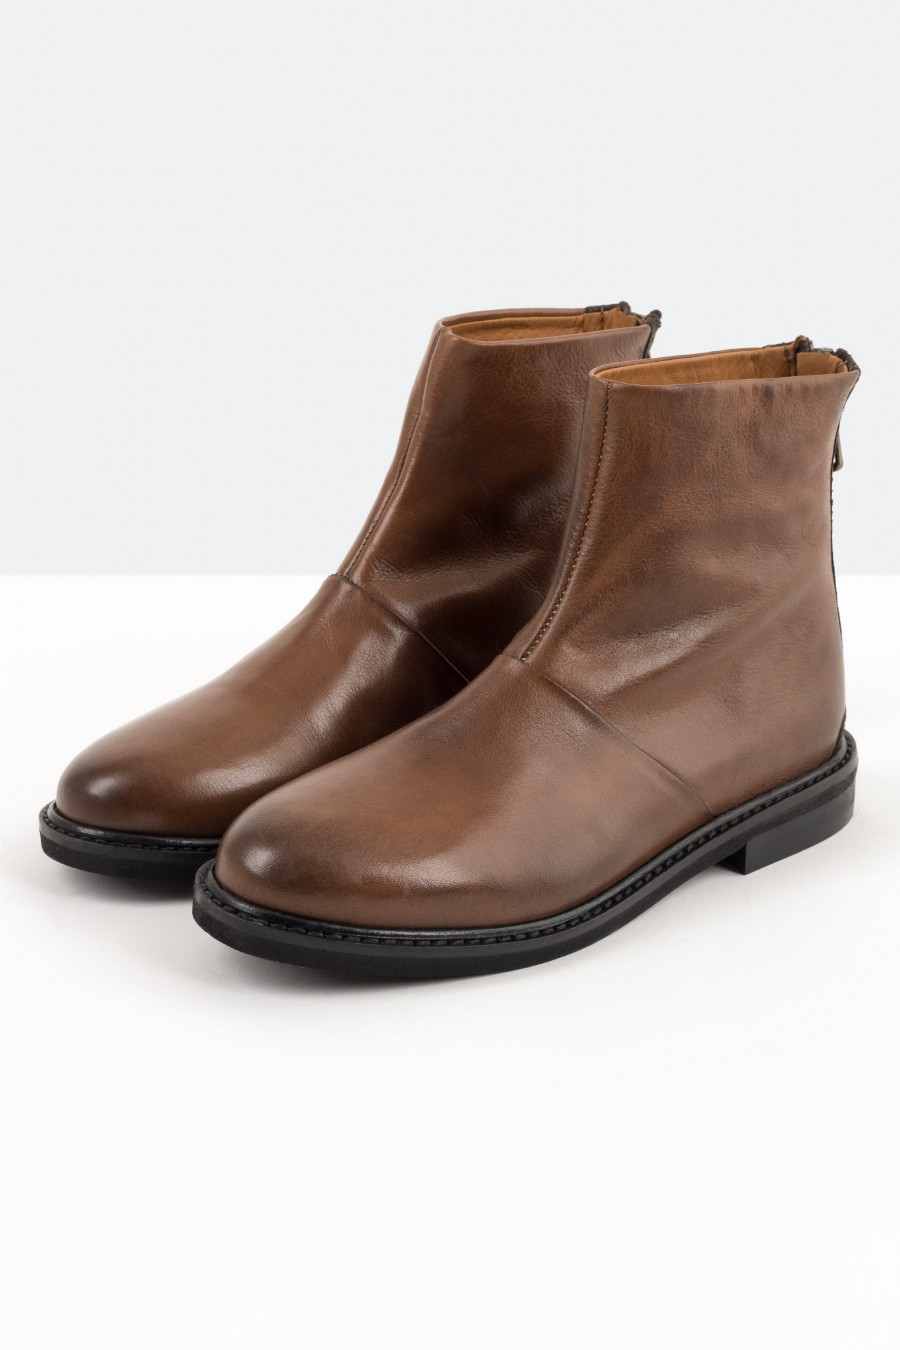 Tobacco brown leather boots